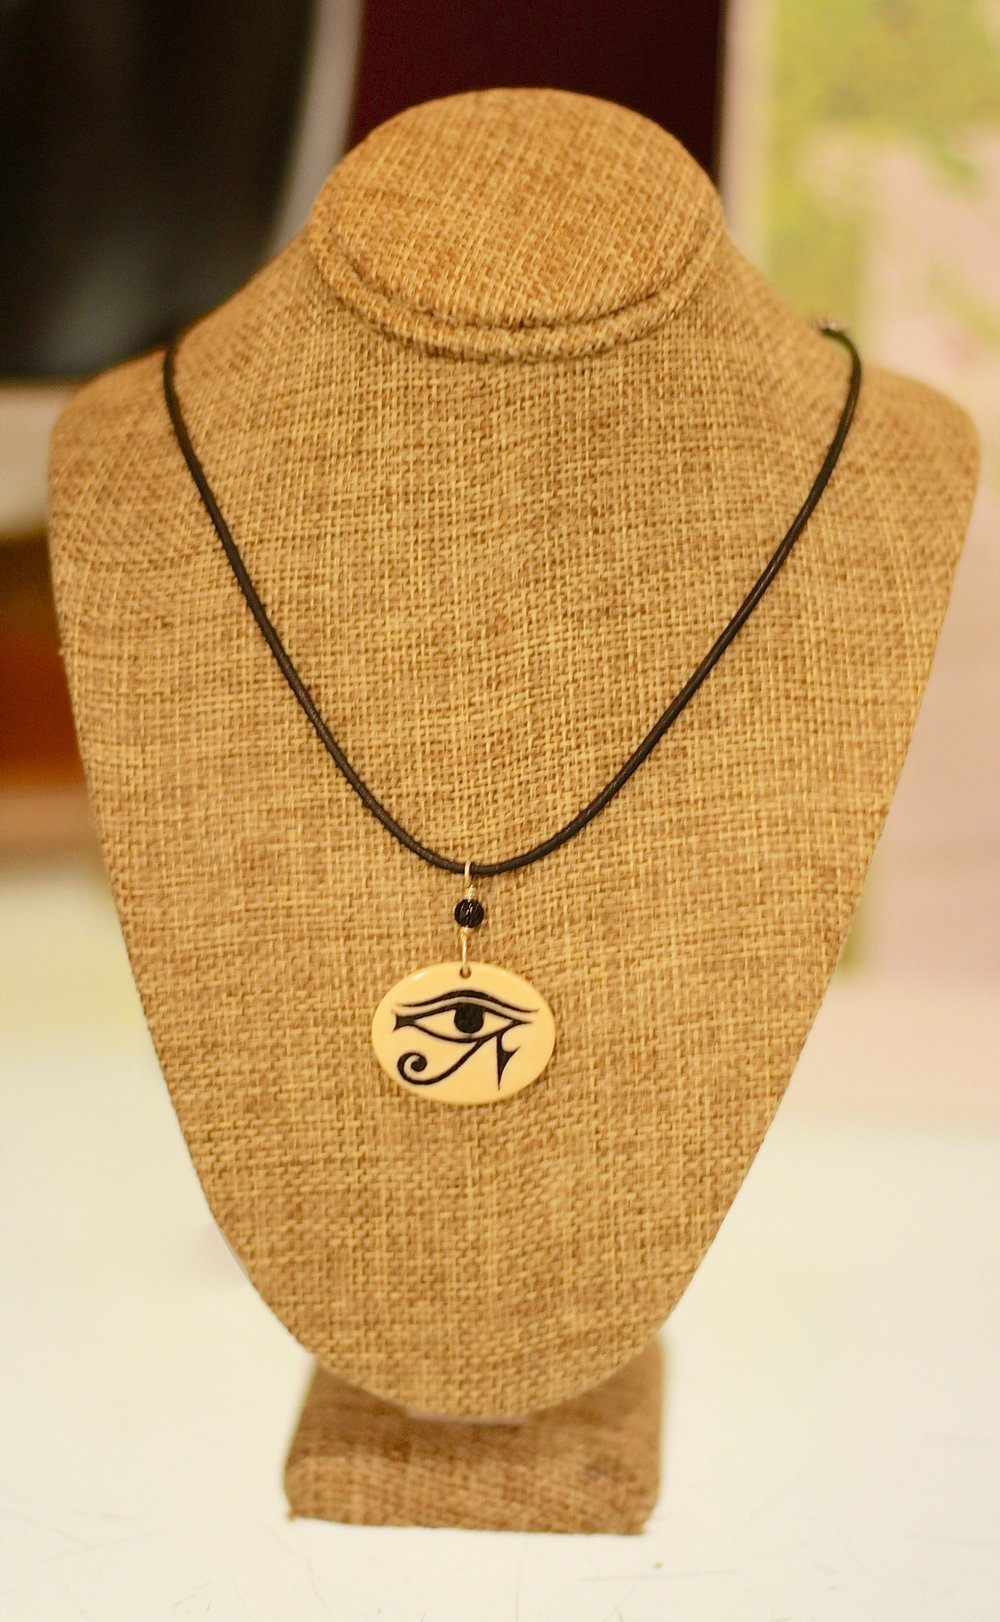 Eye of Horus pendant.jpg